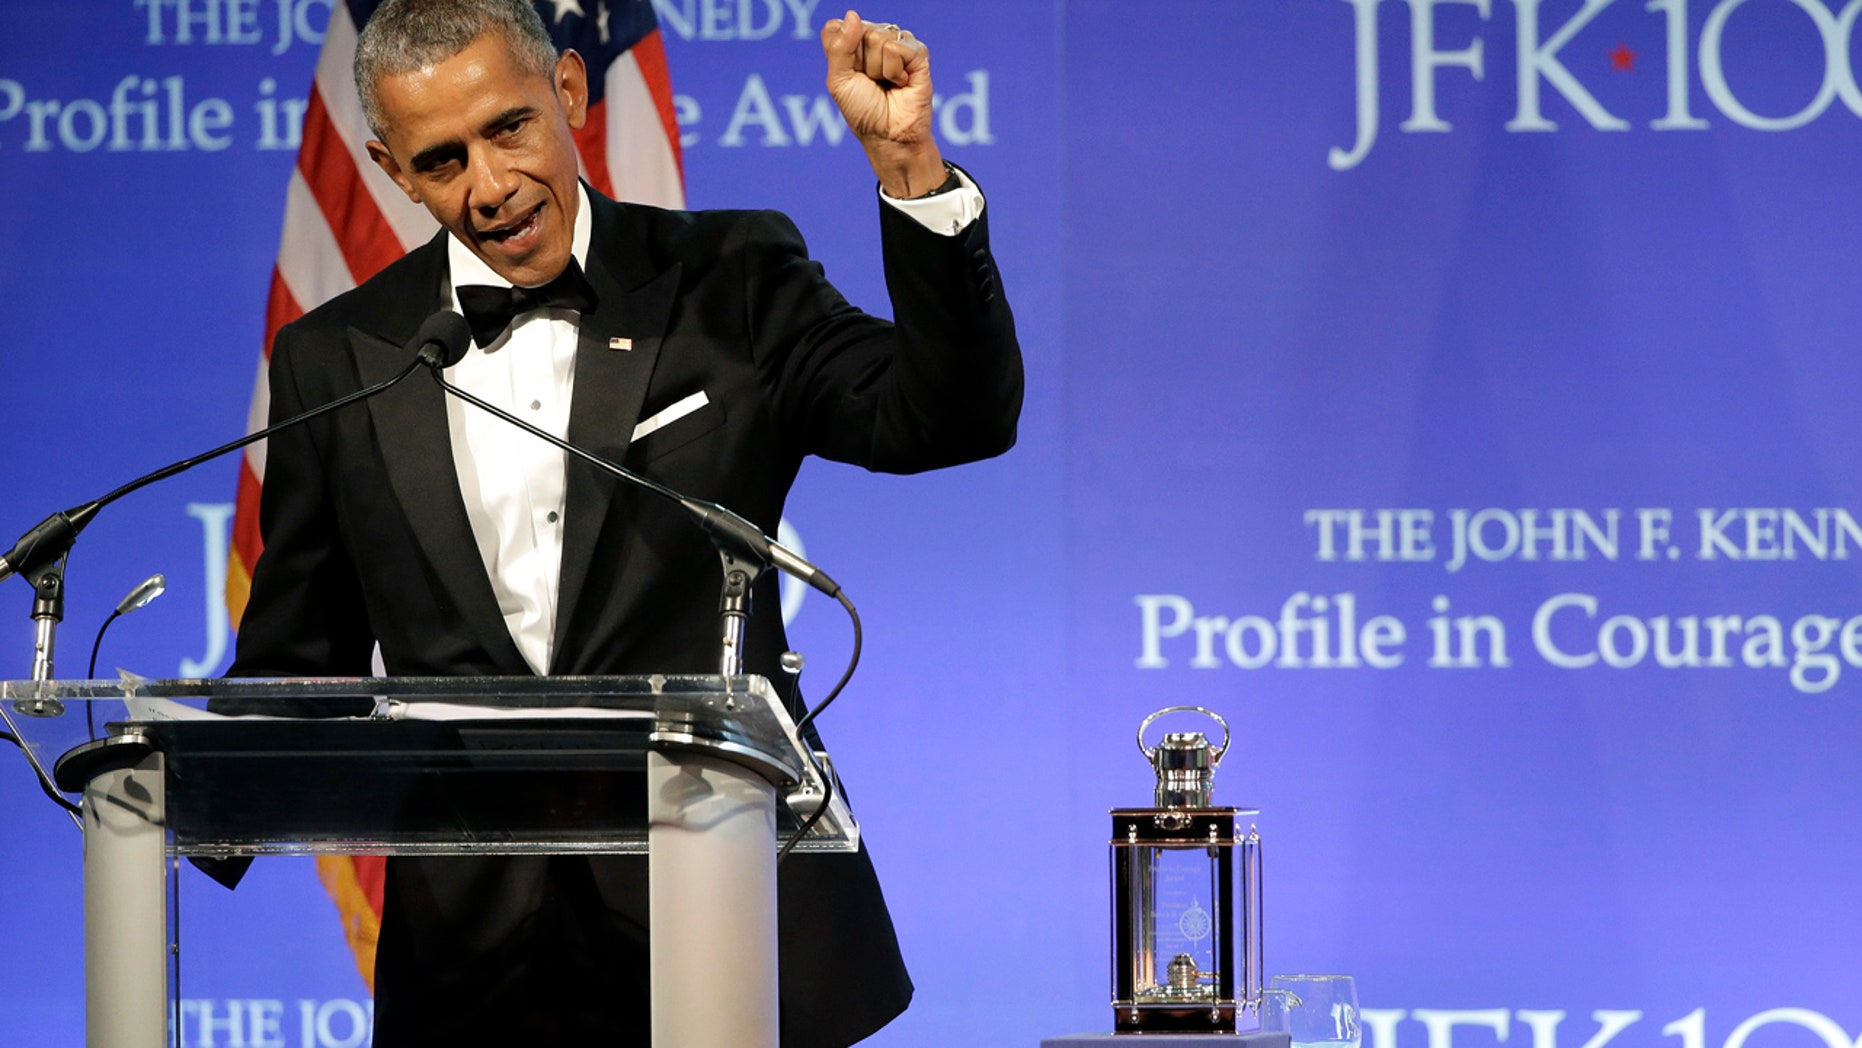 File photo: Former President Barack Obama speaks after being presented with the 2017 Profile in Courage award during ceremonies at the John F. Kennedy Presidential Library and Museum Sunday, May 7, 2017, in Boston. (AP Photo/Steven Senne)